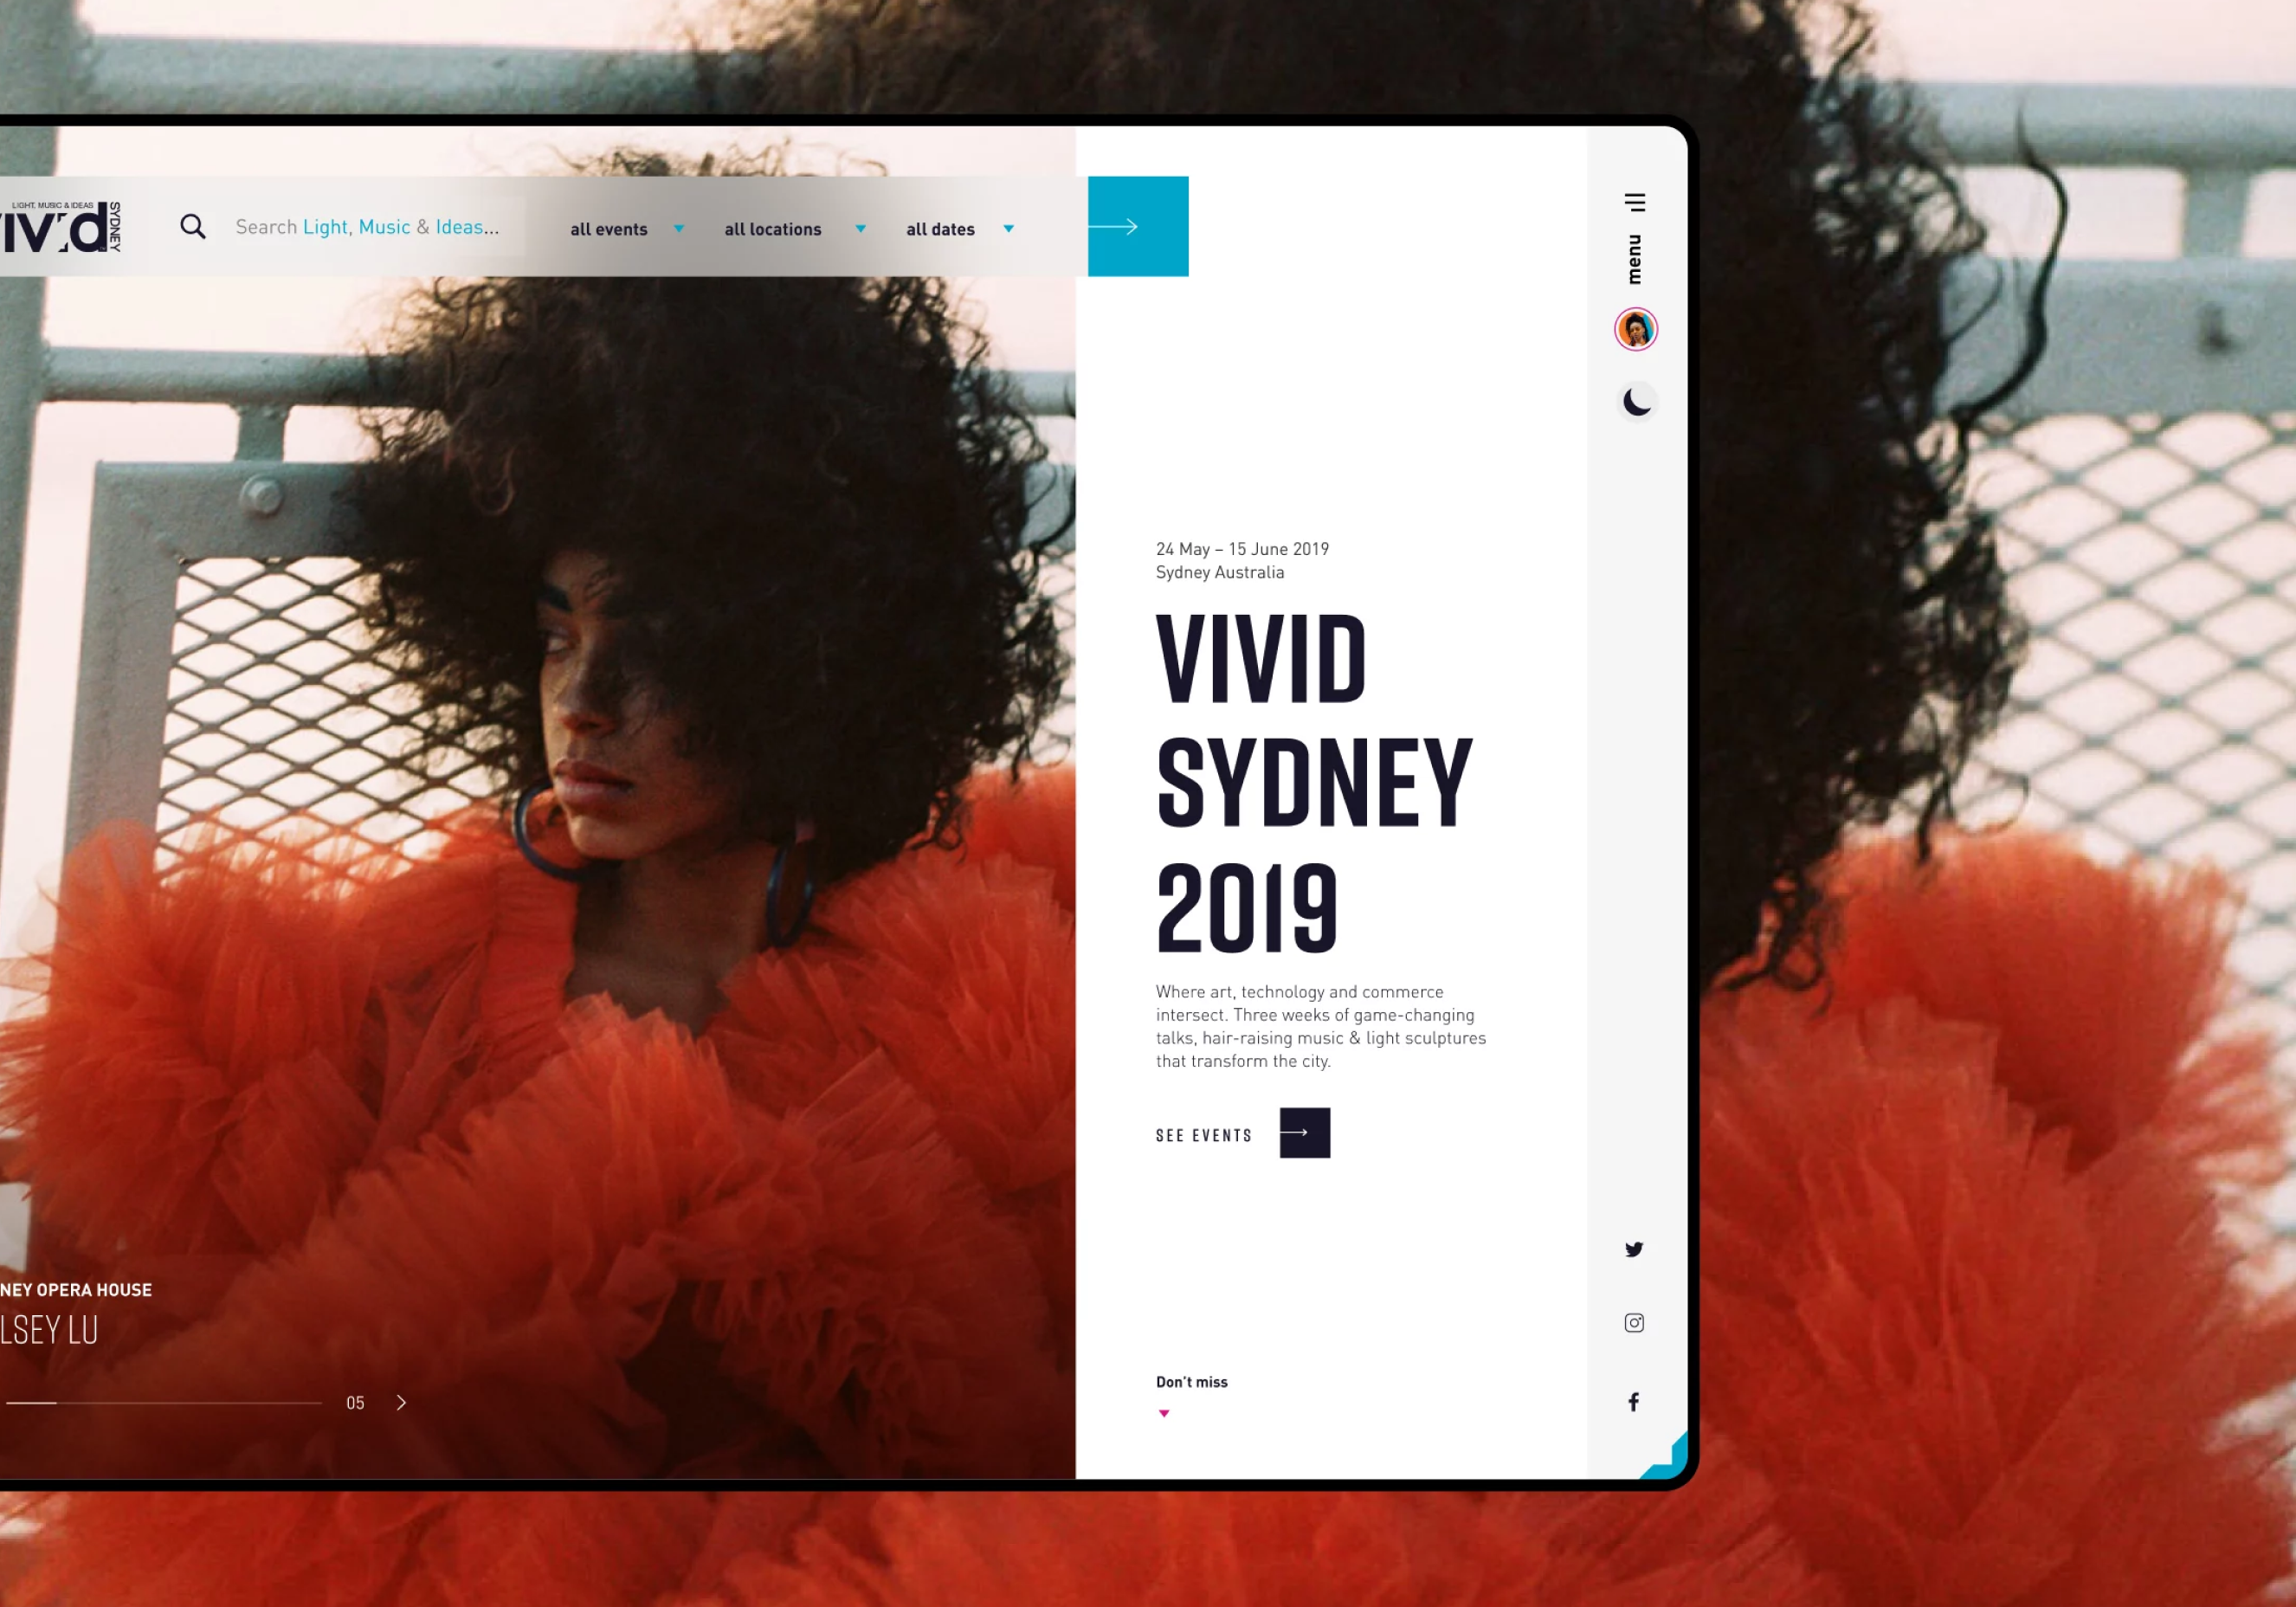 Vivid Sydney 2019 homepage with background image of musical artist